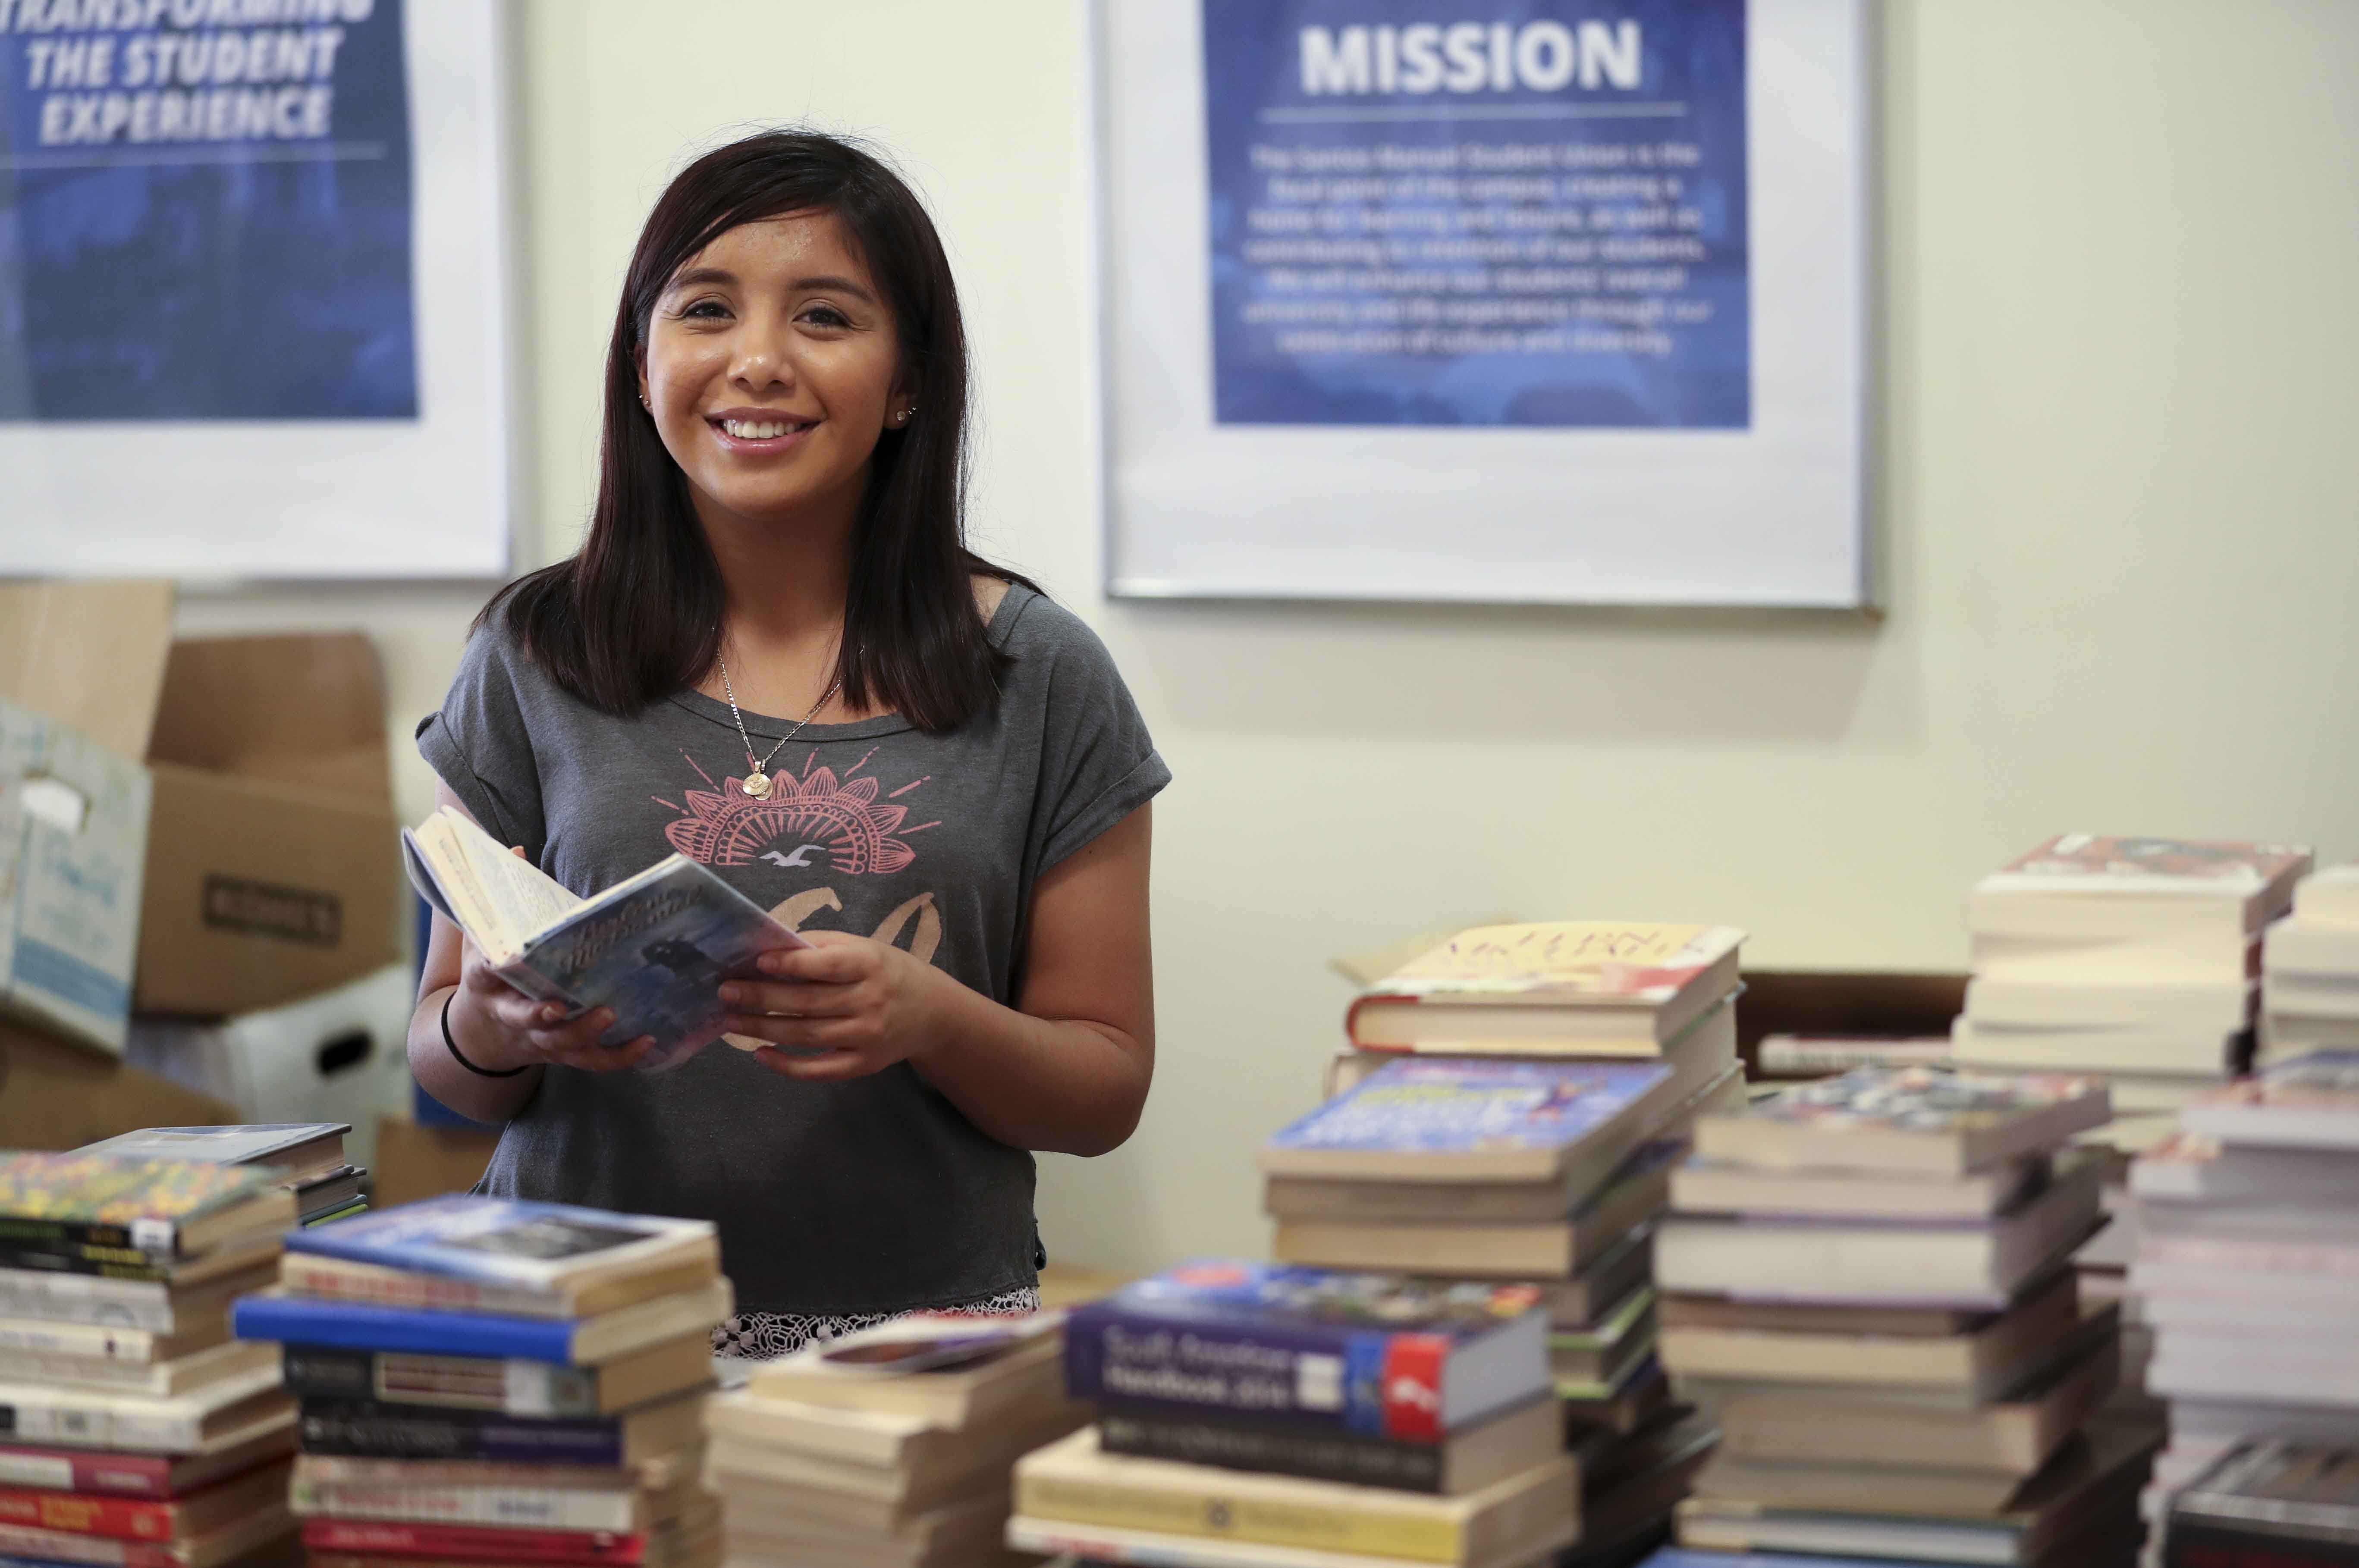 More than 5,000 books were given away to children and young adults.